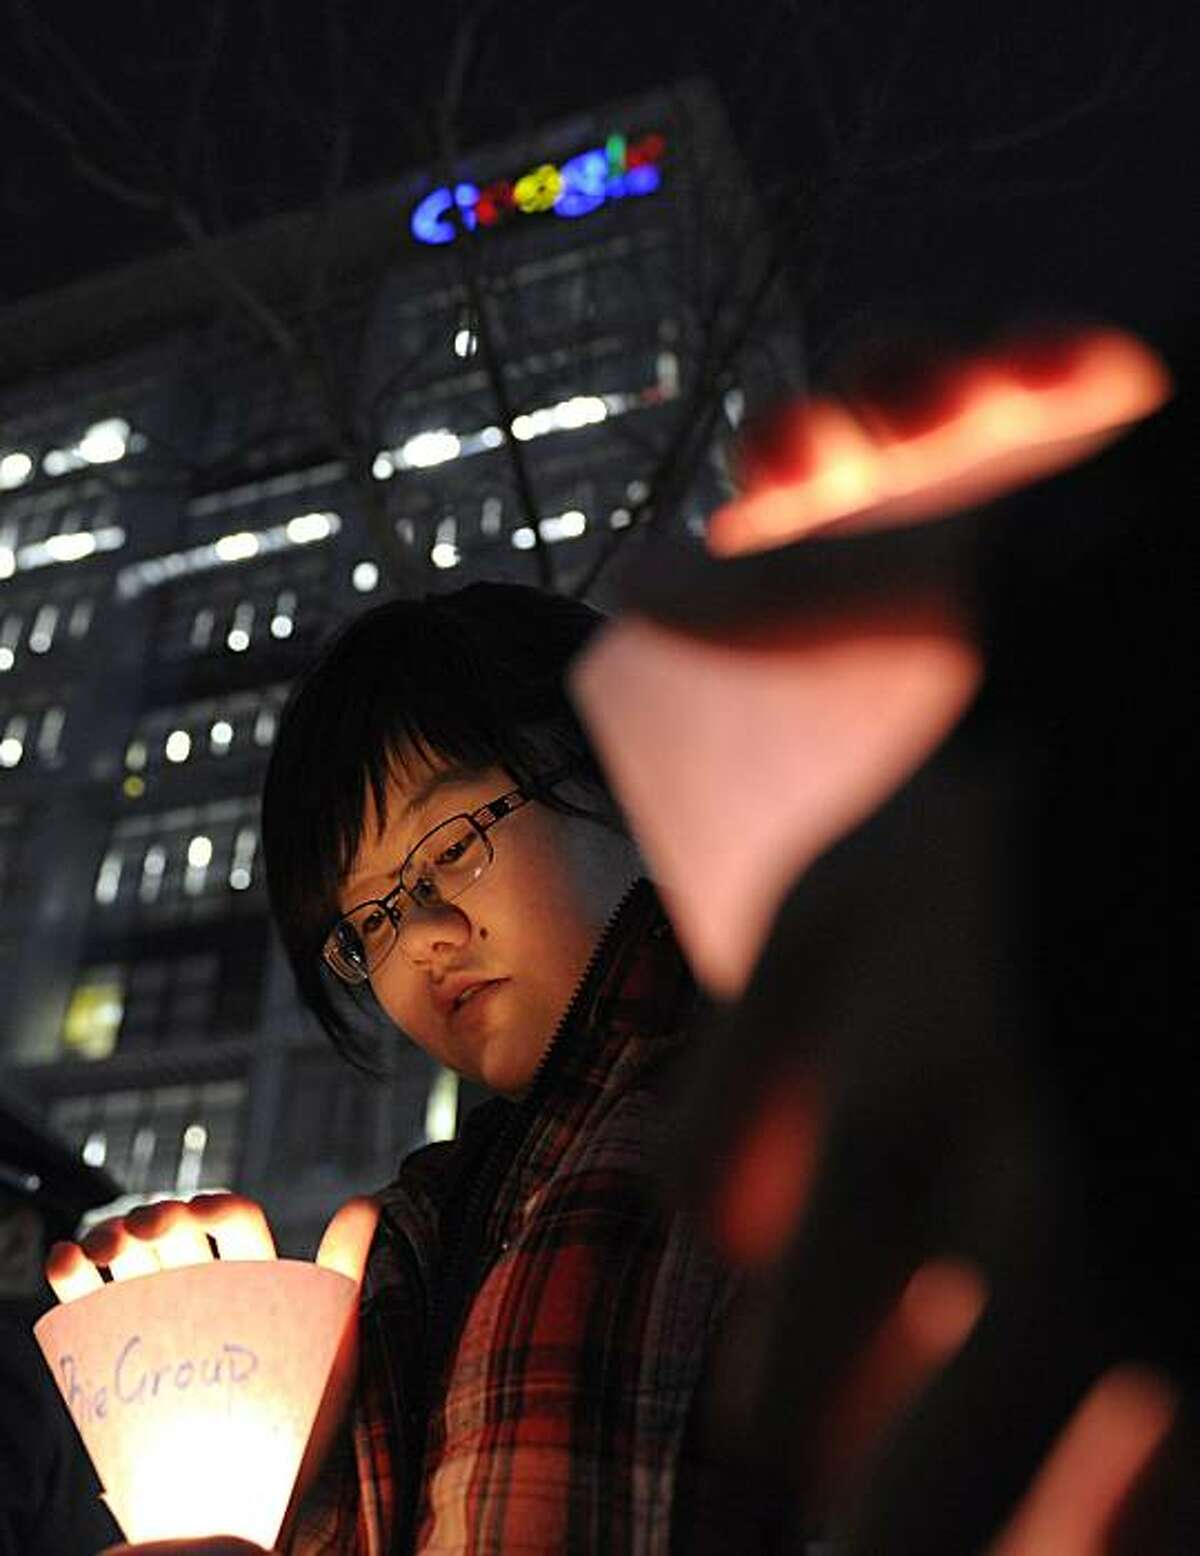 Chinese women hold candle lights in front of Google China headquarters in Beijing Tuesday, March 23, 2010. Google Inc. stopped censoring the Internet for China by shifting its search engine off the mainland Monday but said it will maintain other operations in the country. The maneuver attempts to balance Google's disdain for China's Internet rules with the company's desire to profit from an explosively growing market.